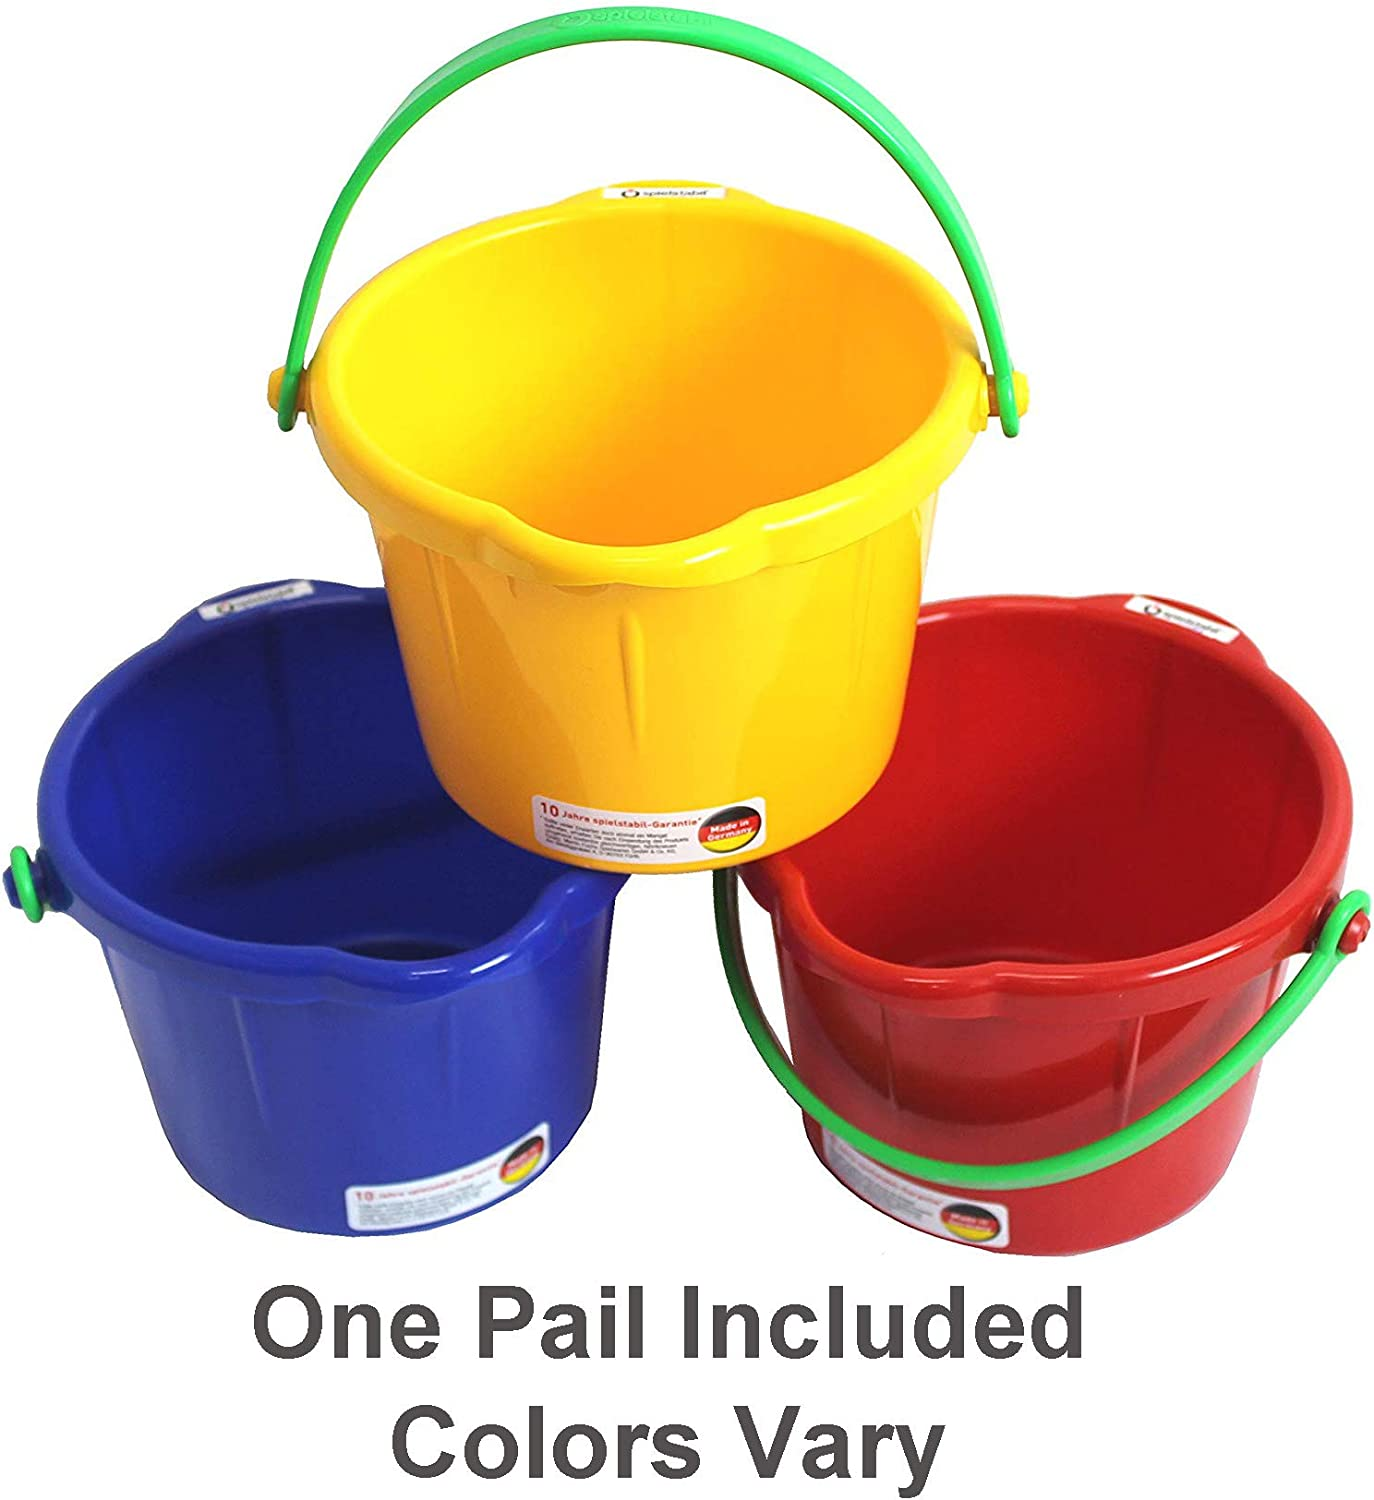 Amazon Com Spielstabil Small Sand Pail 1 5 Liter One Pail Included Colors Vary Made In Germany Toys Games